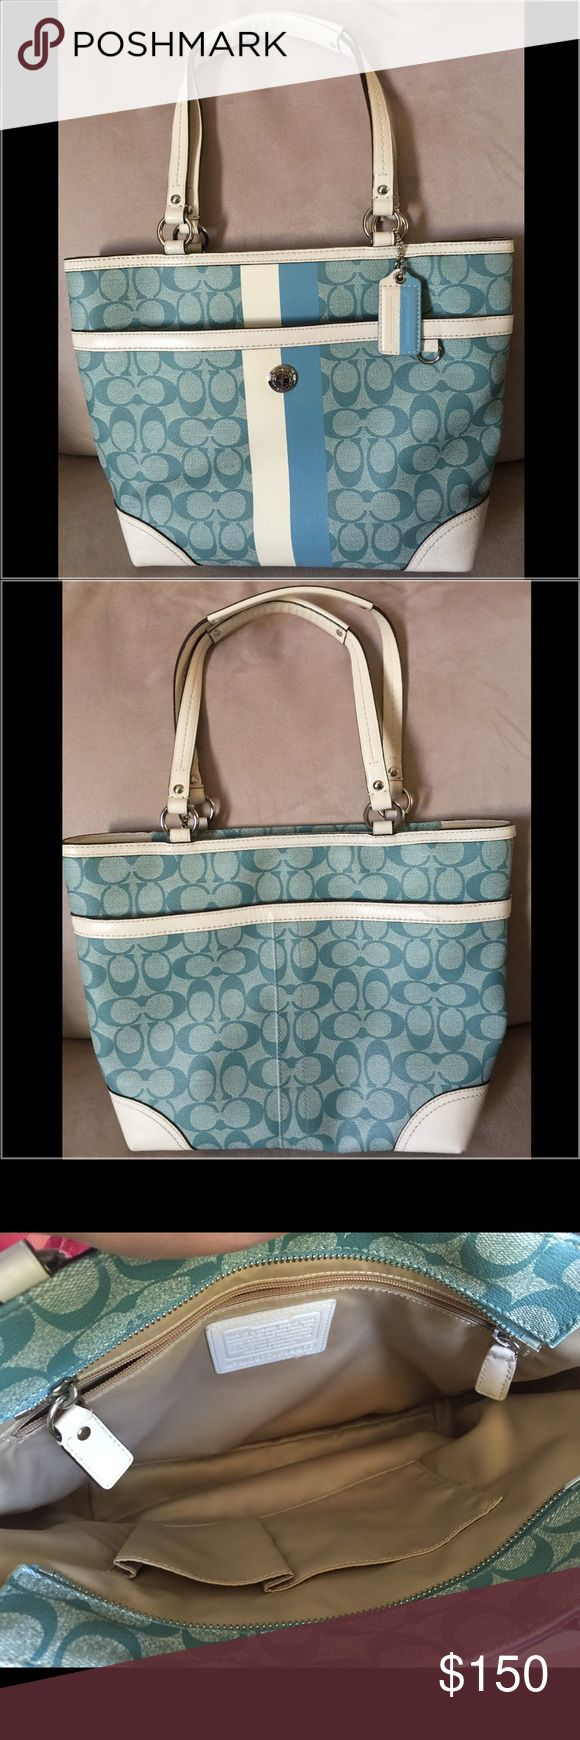 Authentic Light Blue and White Coach Hobo Bag Authentic Beautiful purse that's brand new but without a tag. Never worn. Excellent condition. No marks, stains, scuffs or rips. Coach Bags Hobos